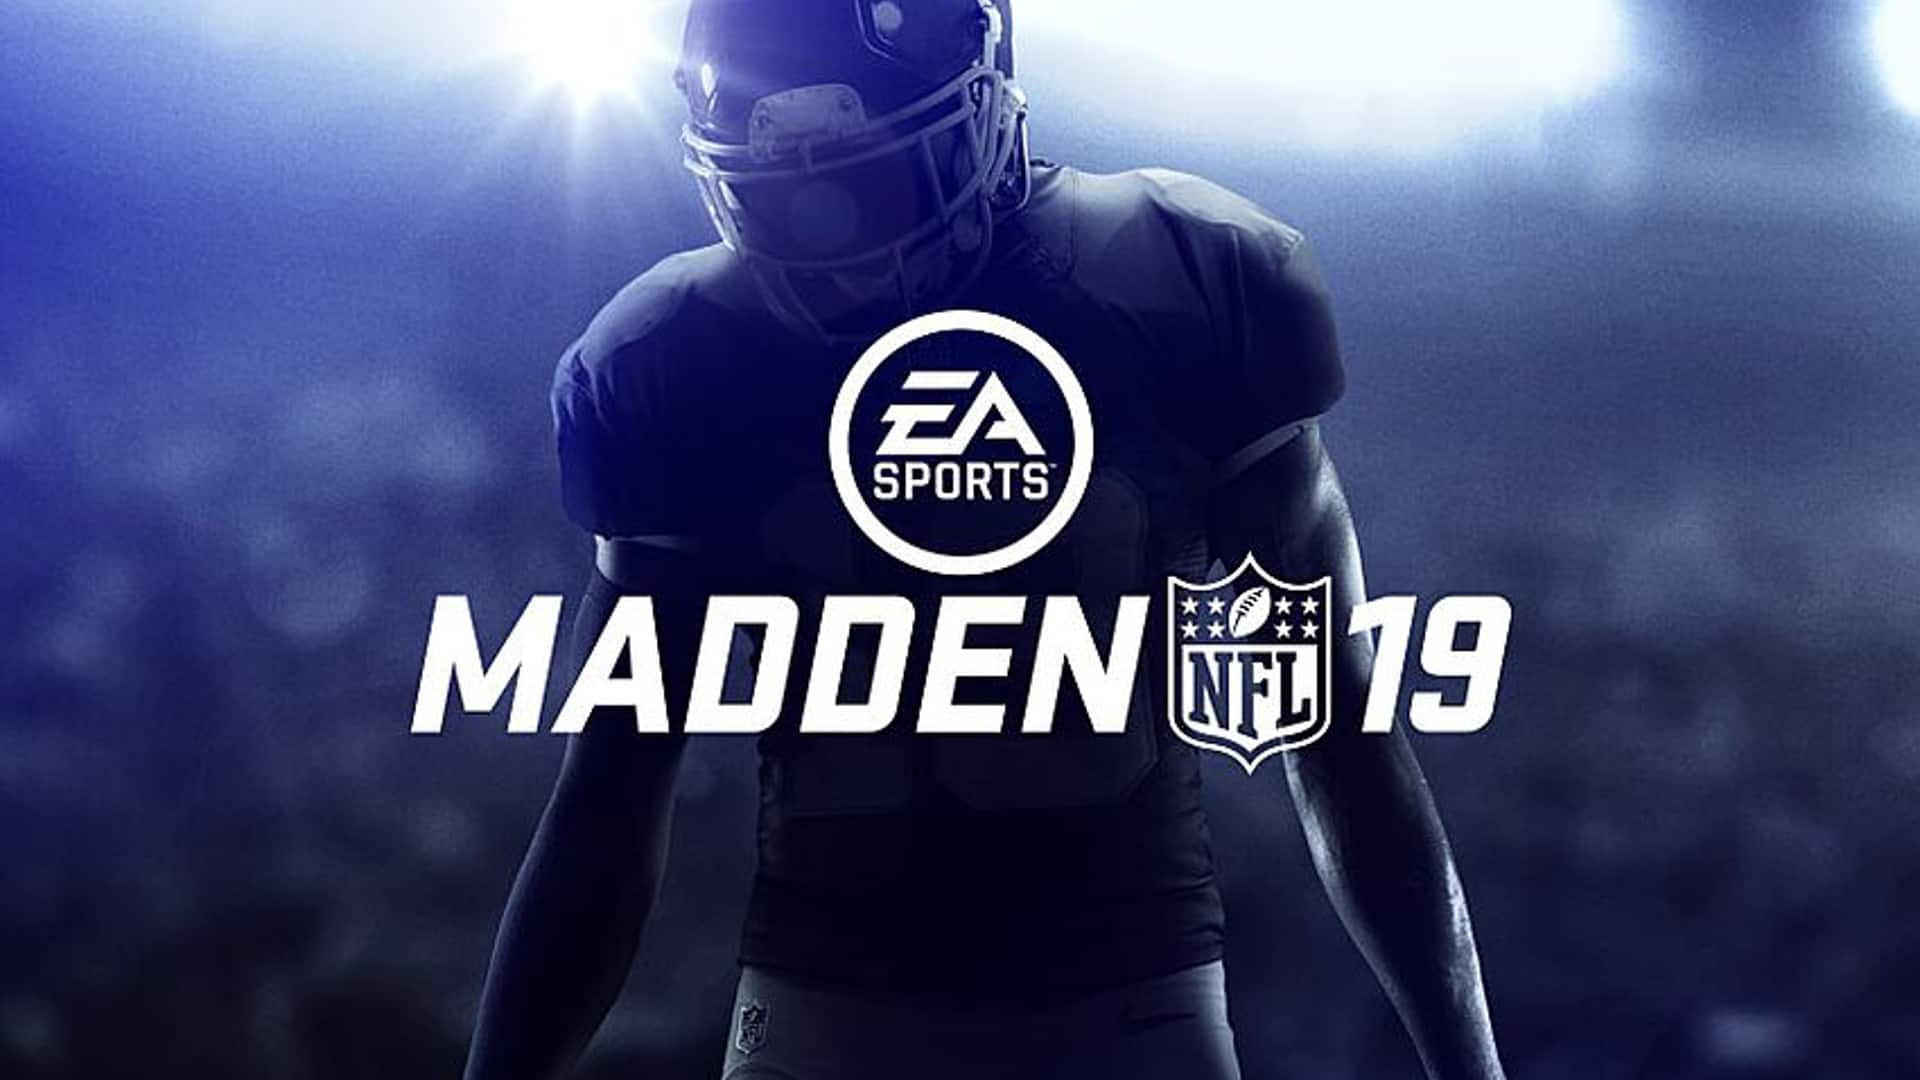 Madden NFL 19 will release on PC & is a part of Origins